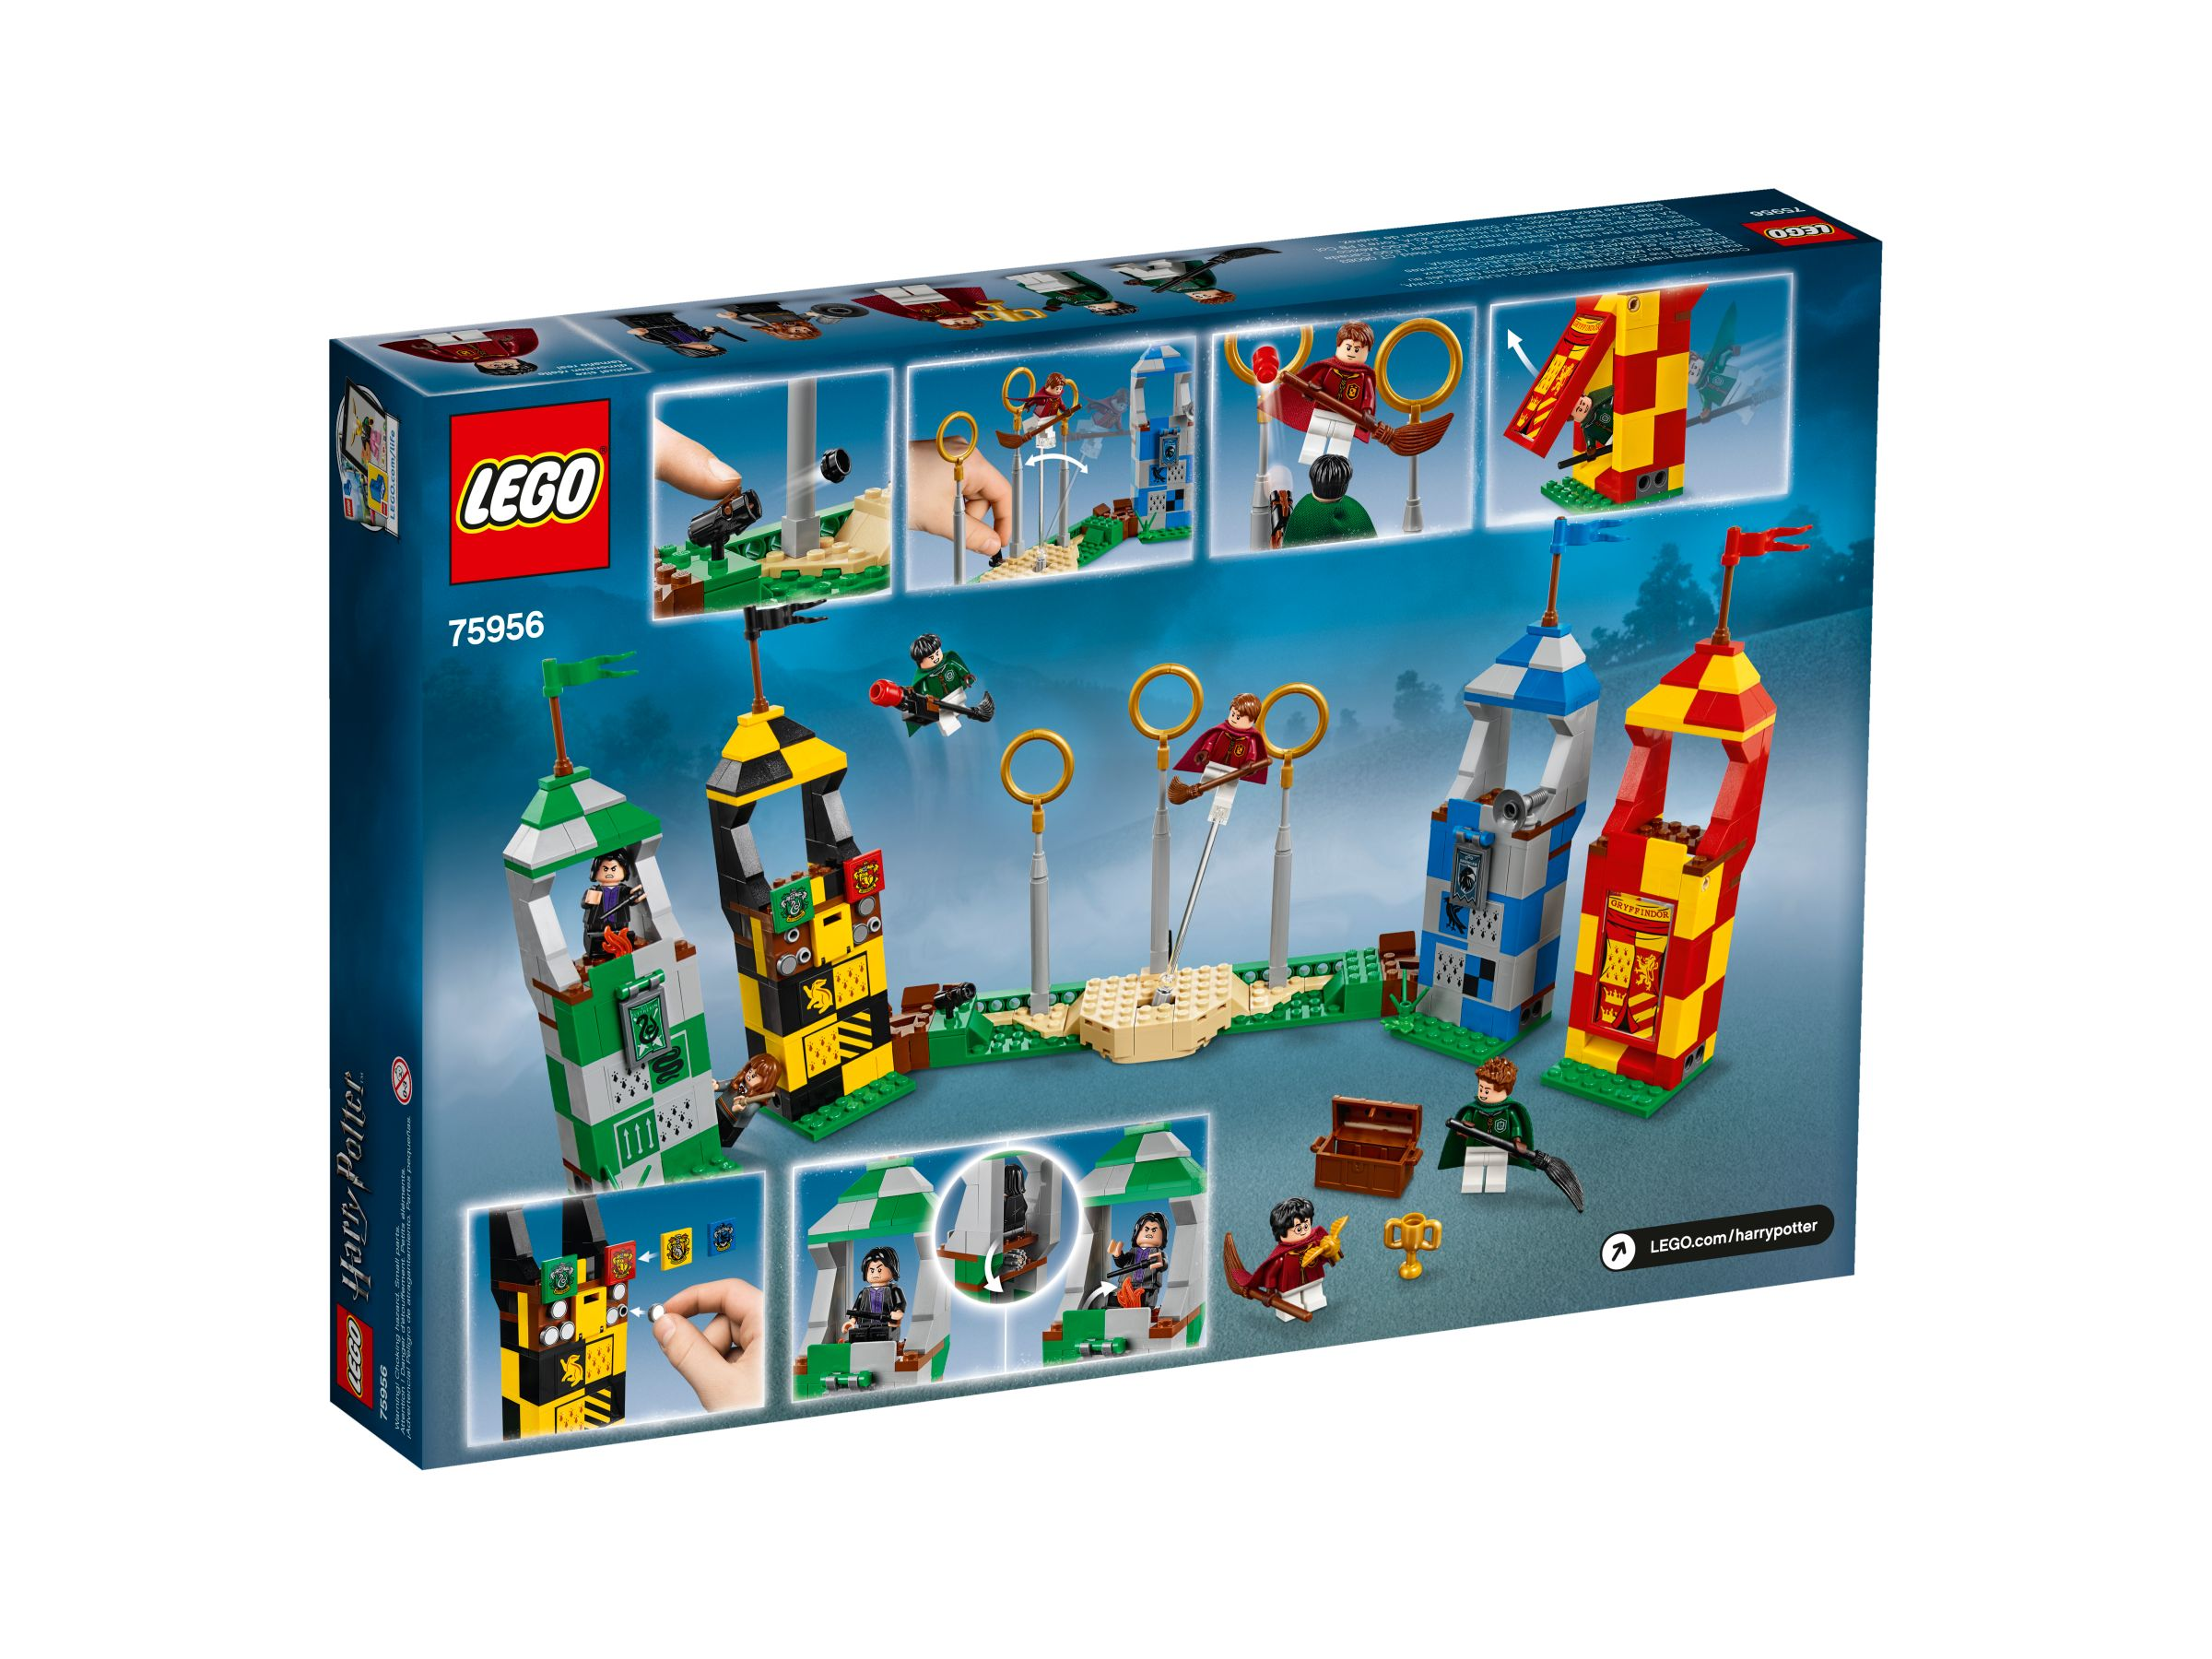 LEGO Harry Potter 75956 Quidditch™ Turnier LEGO_75956_alt7.jpg